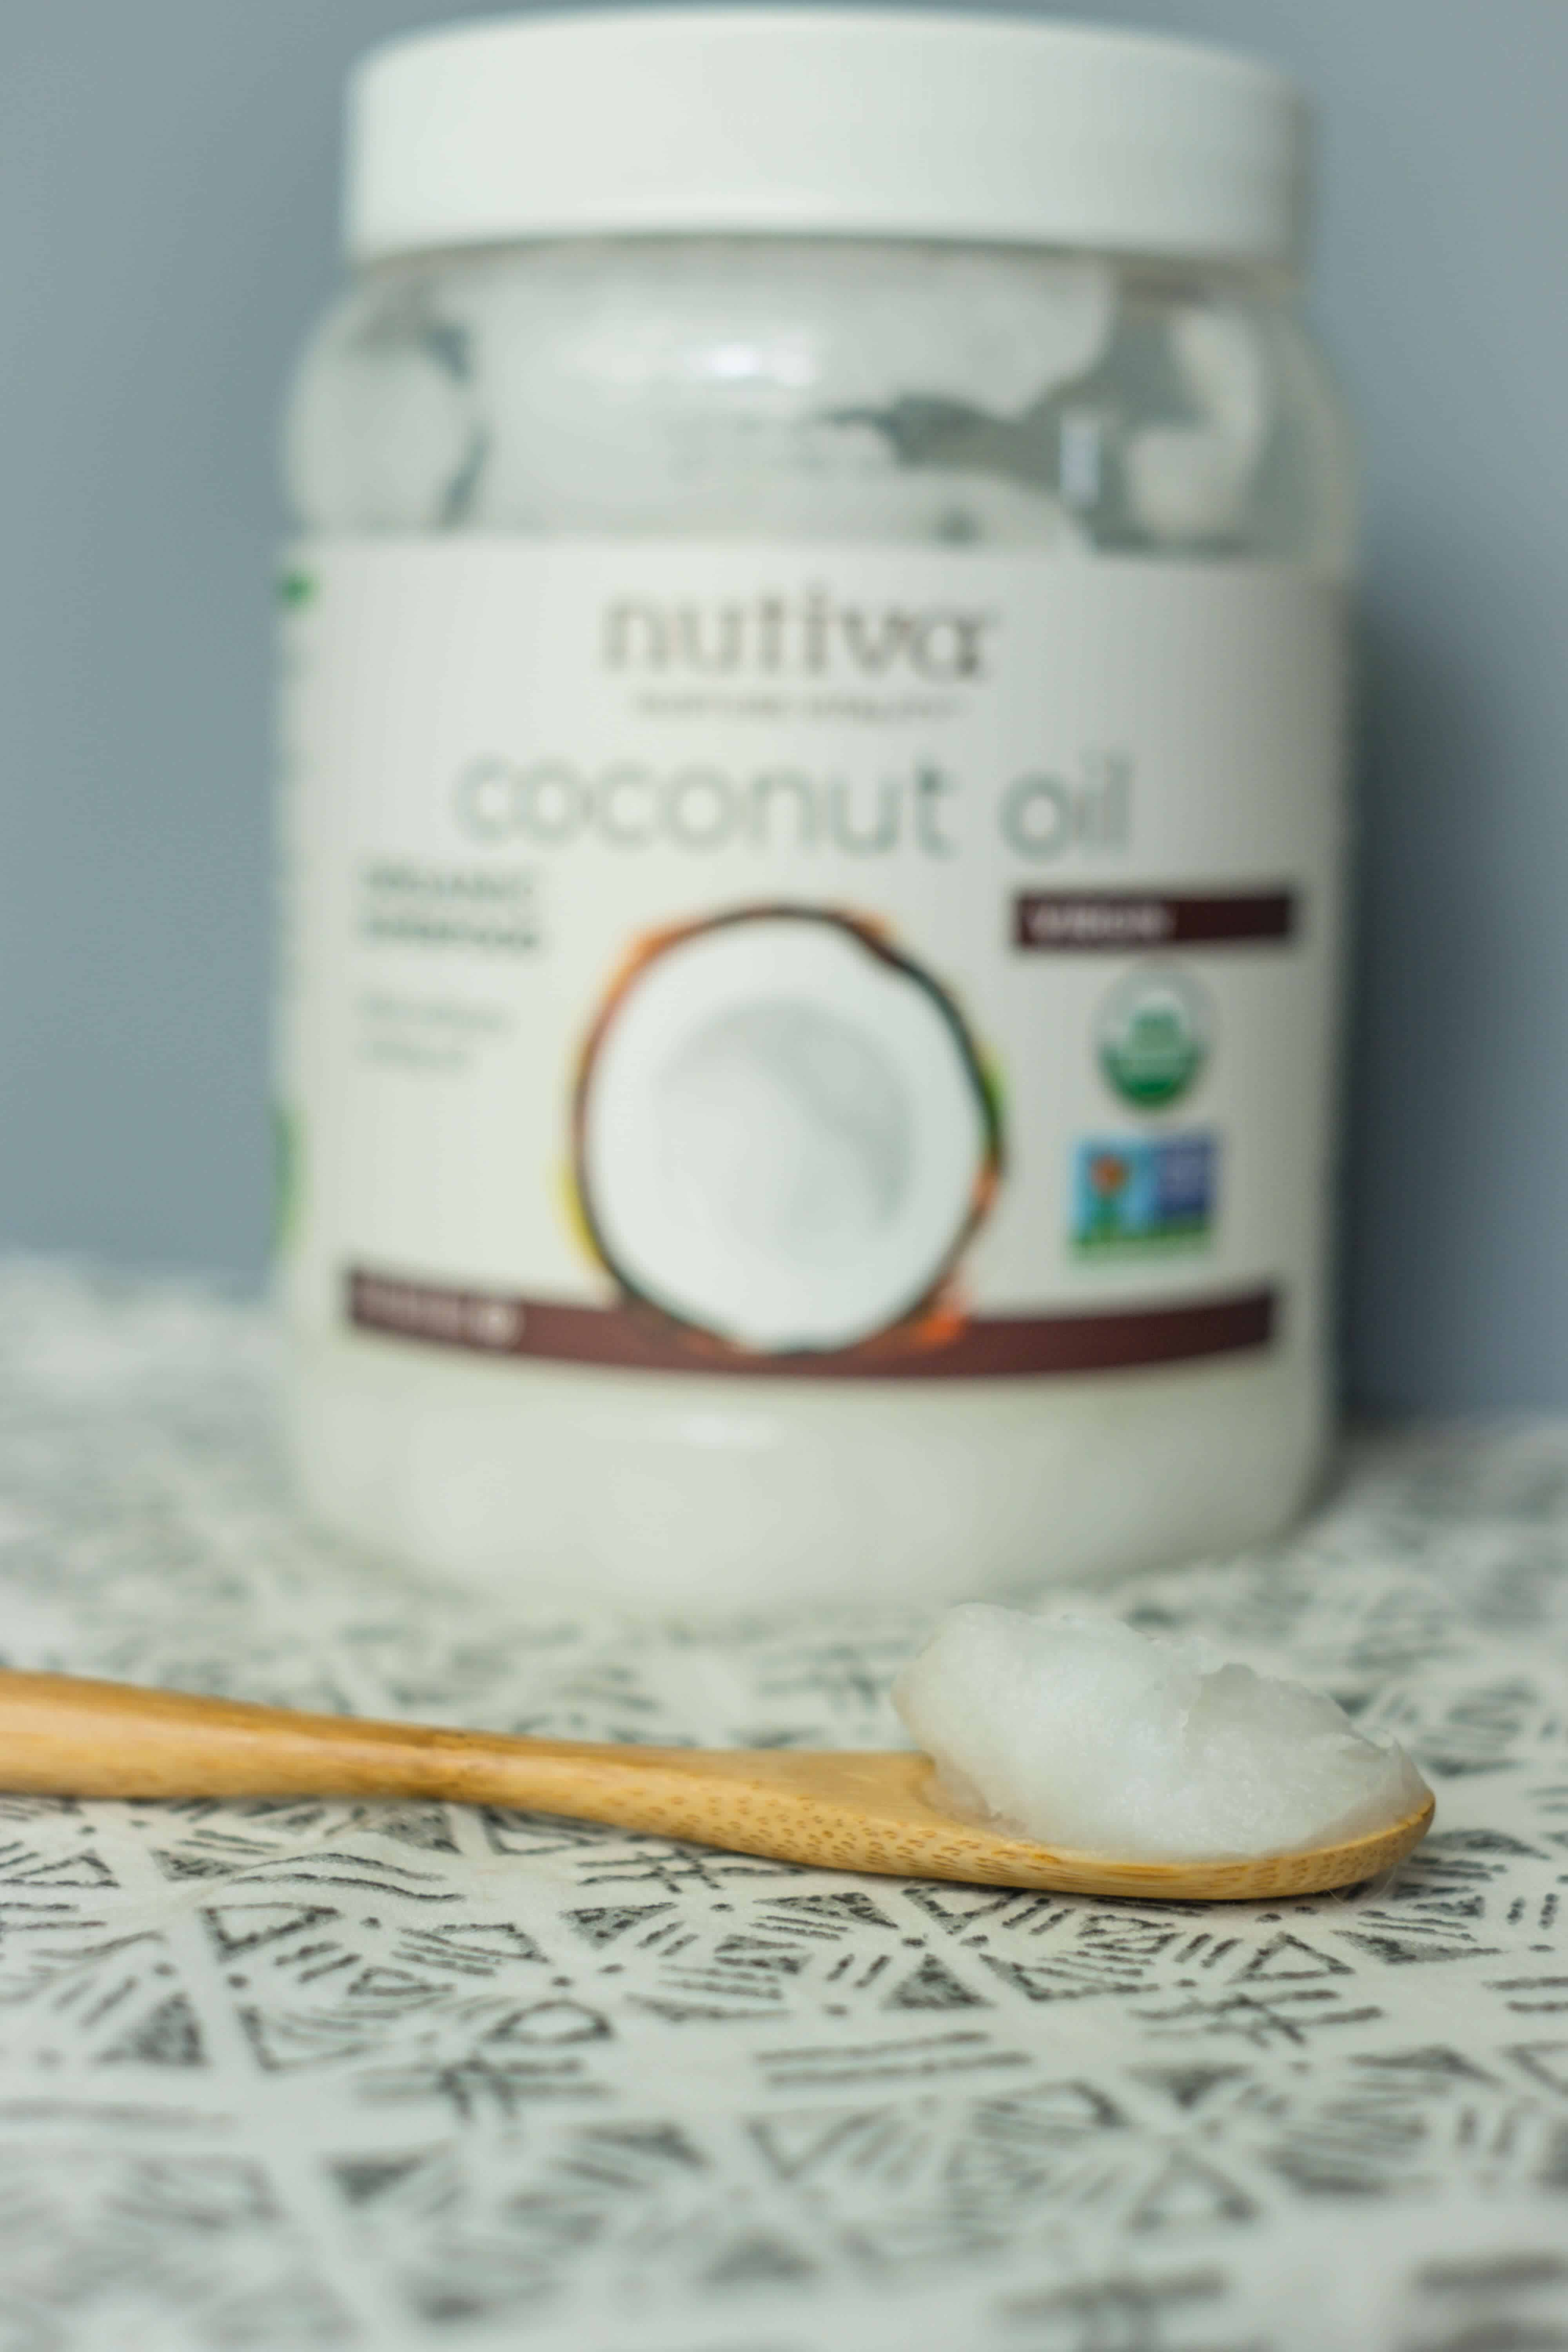 How To Start Oil Pulling & Why It Matters #saveeandsavory #wellness #healthyhabits #oilpulling #coconutoil